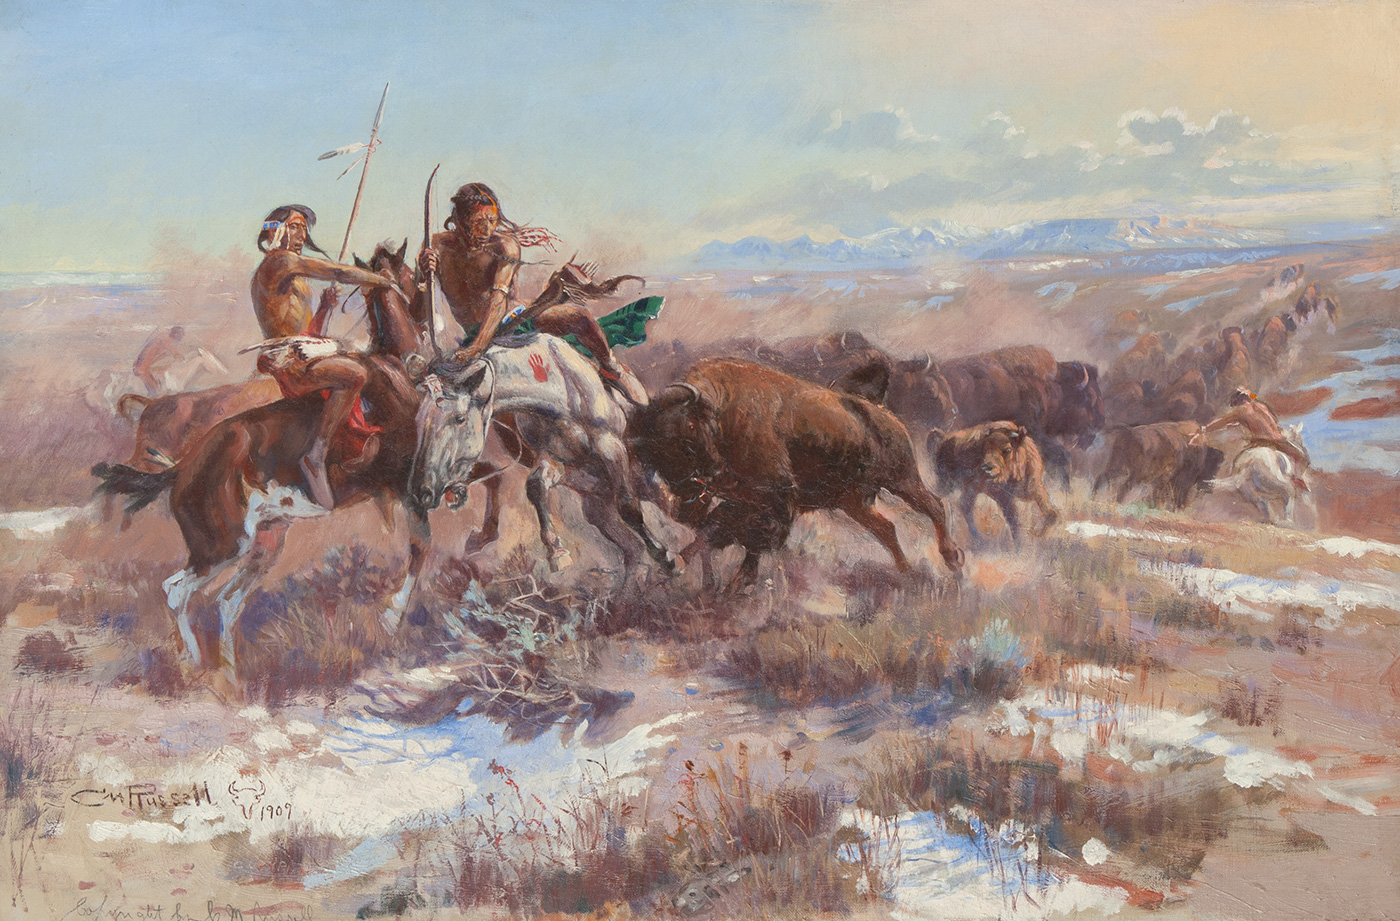 Two indigenous American men on horseback are charged by a wounded bison.